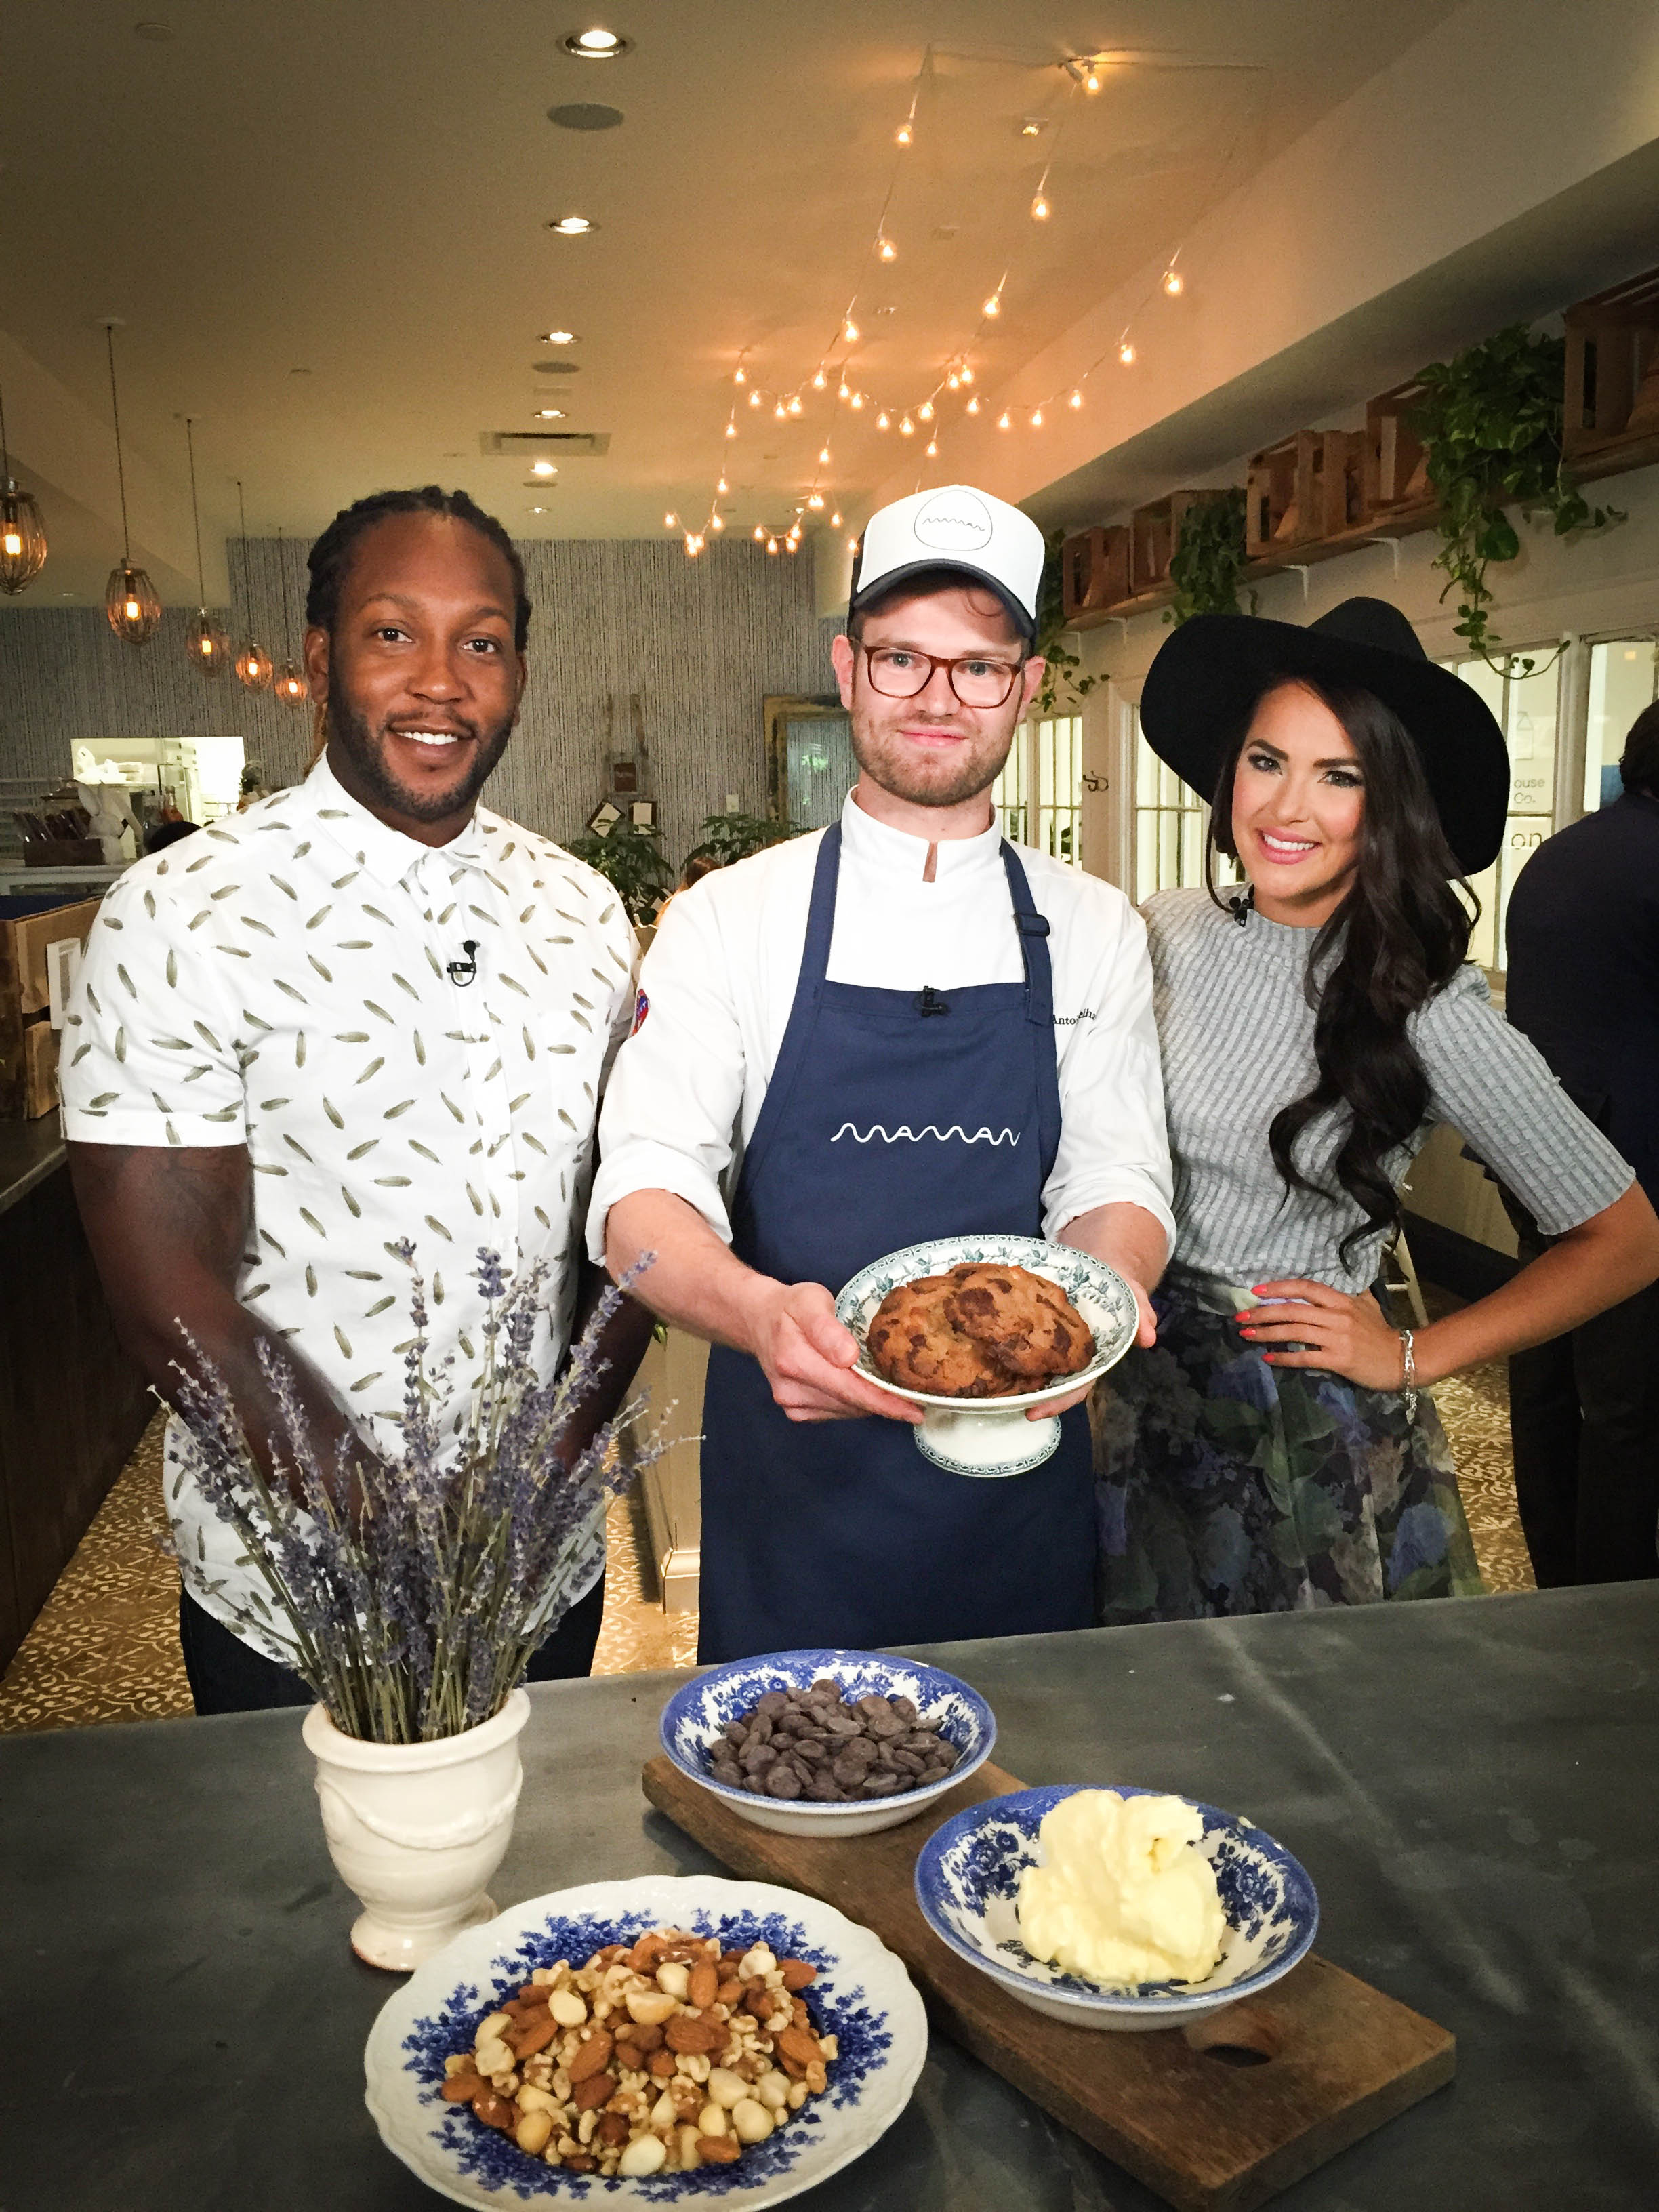 Had such a great day filming at Maman in Toronto with Chef Antoine and my co-host Tyrone Edwards!